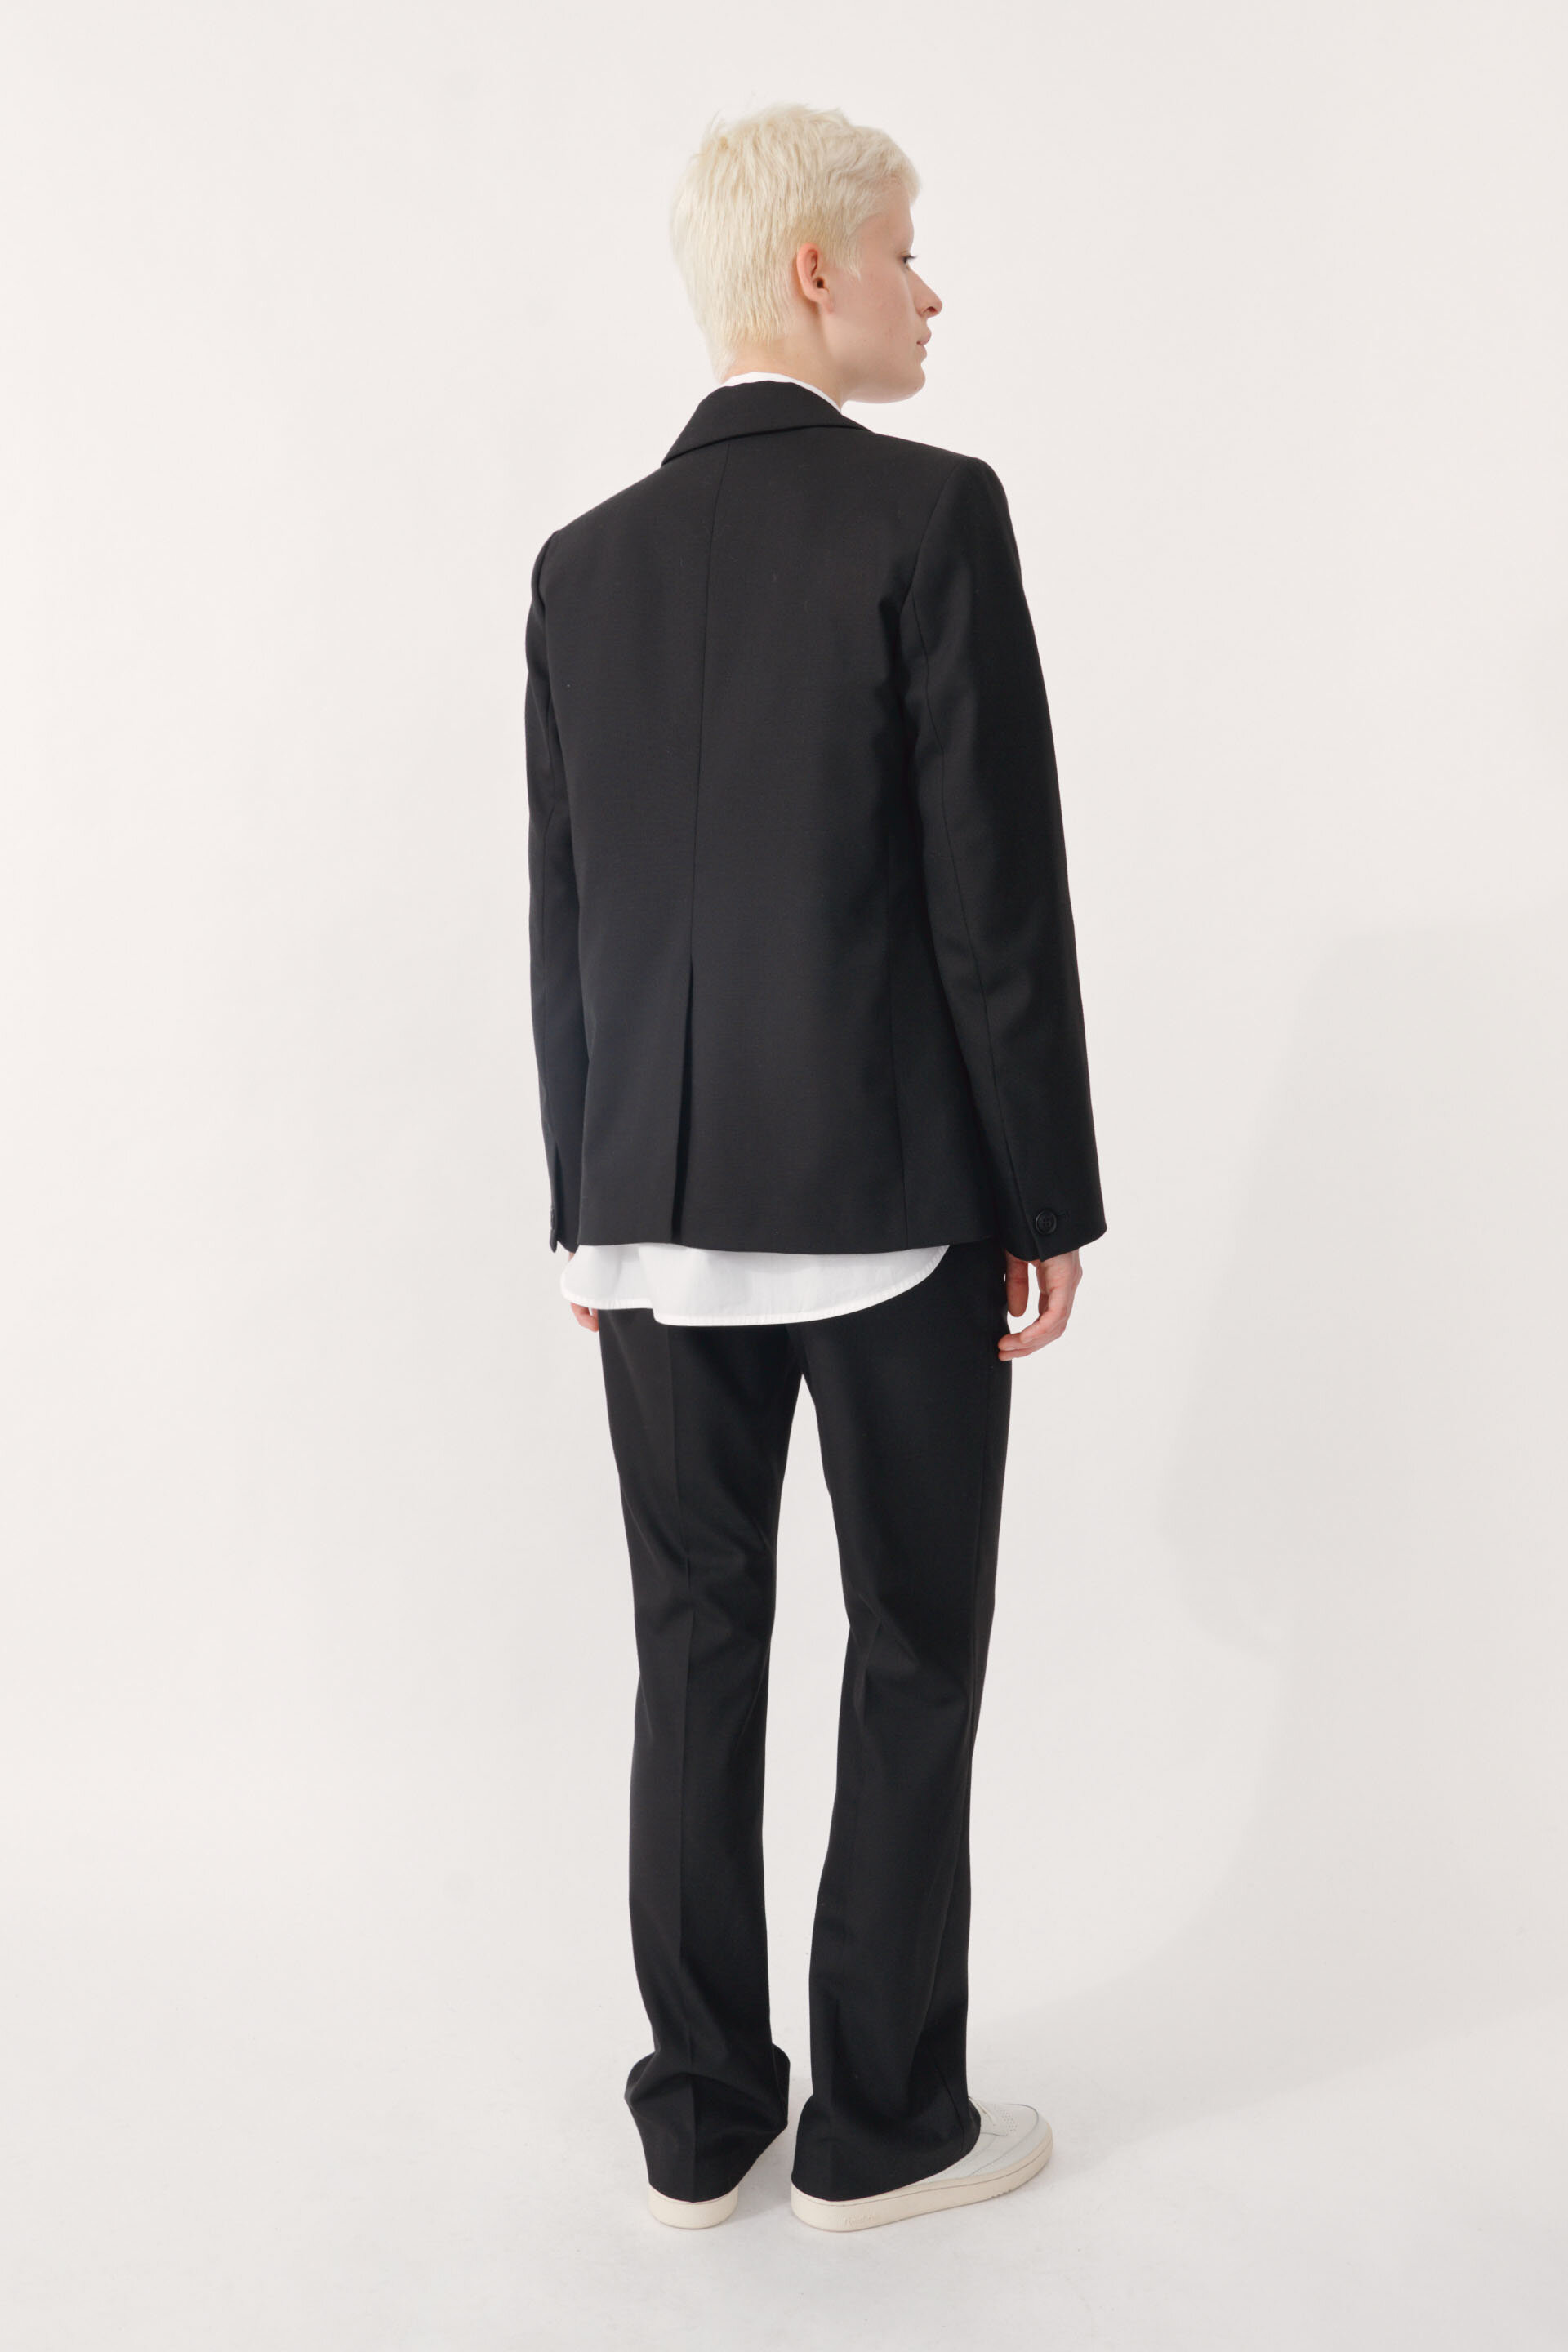 Bee Blazer black A fully lined, regular fit blazer with a single button closure and patch pockets in the front - detail image